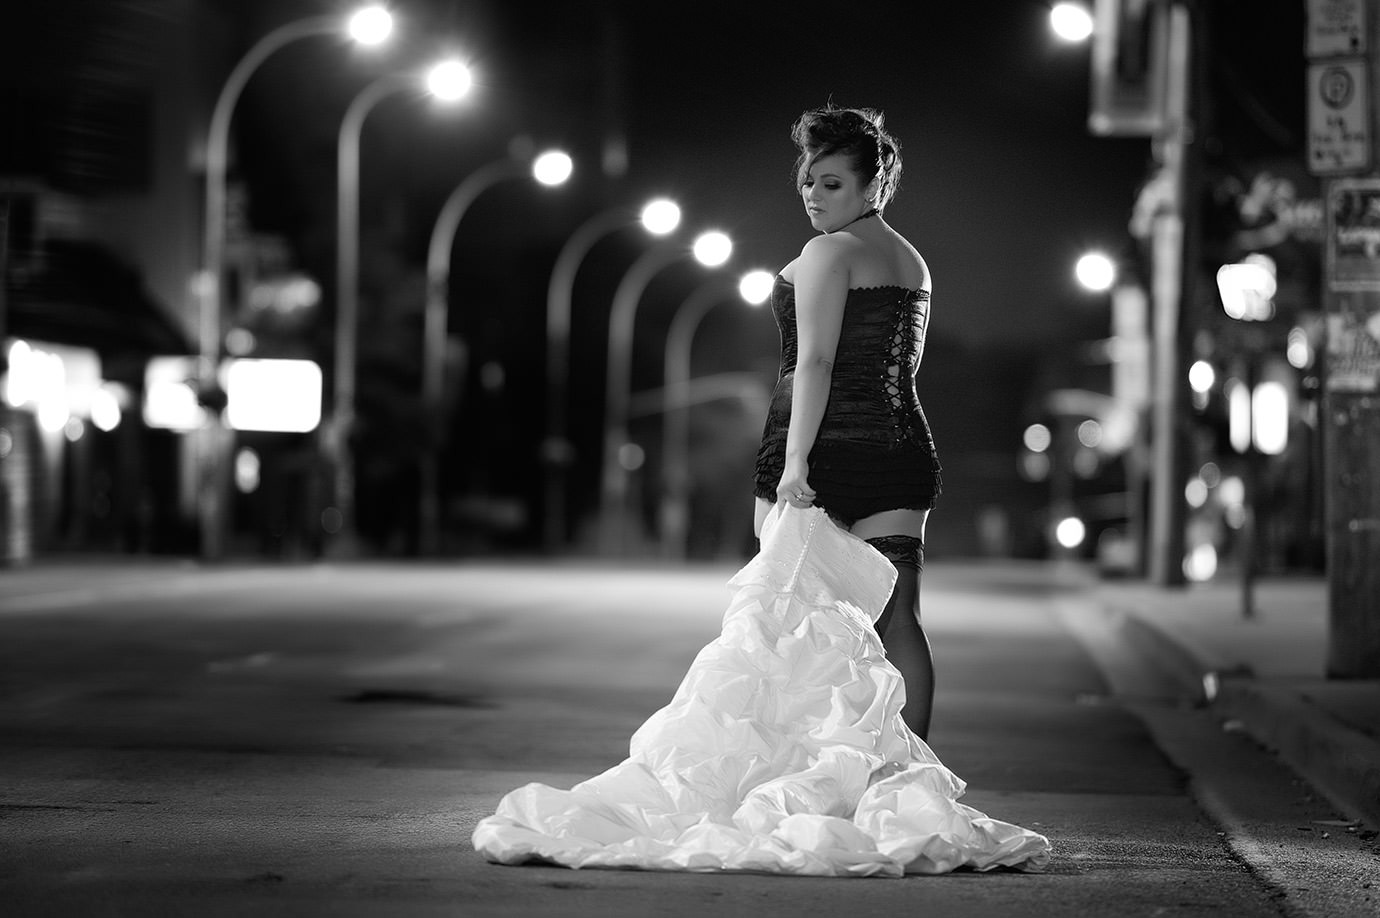 halifax boudoir photographers, creative bridal, trash the dress